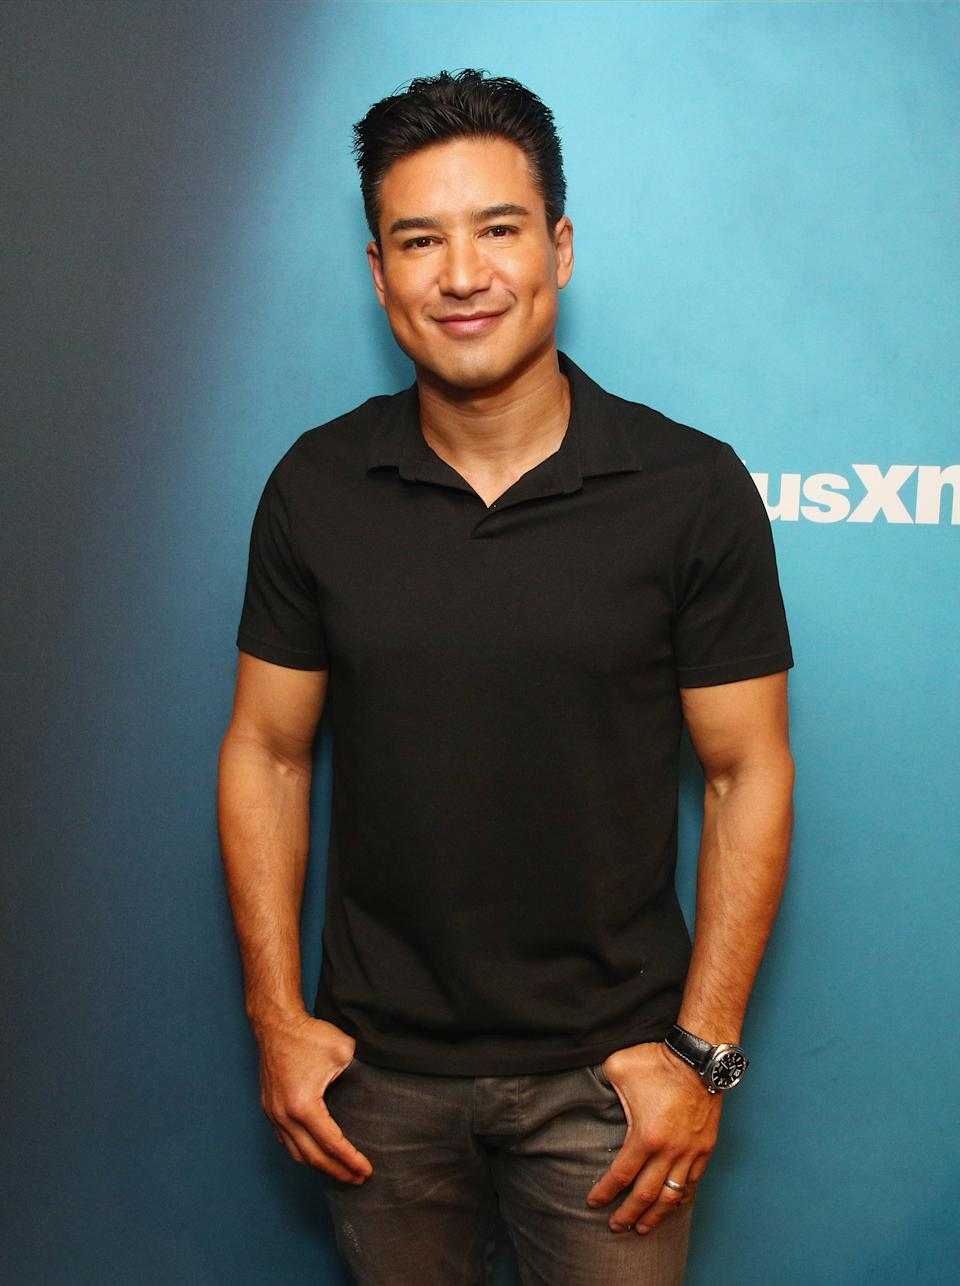 Television personality host Mario Lopez shared his controversial views on raising transgender children. (Photo: Getty Images)